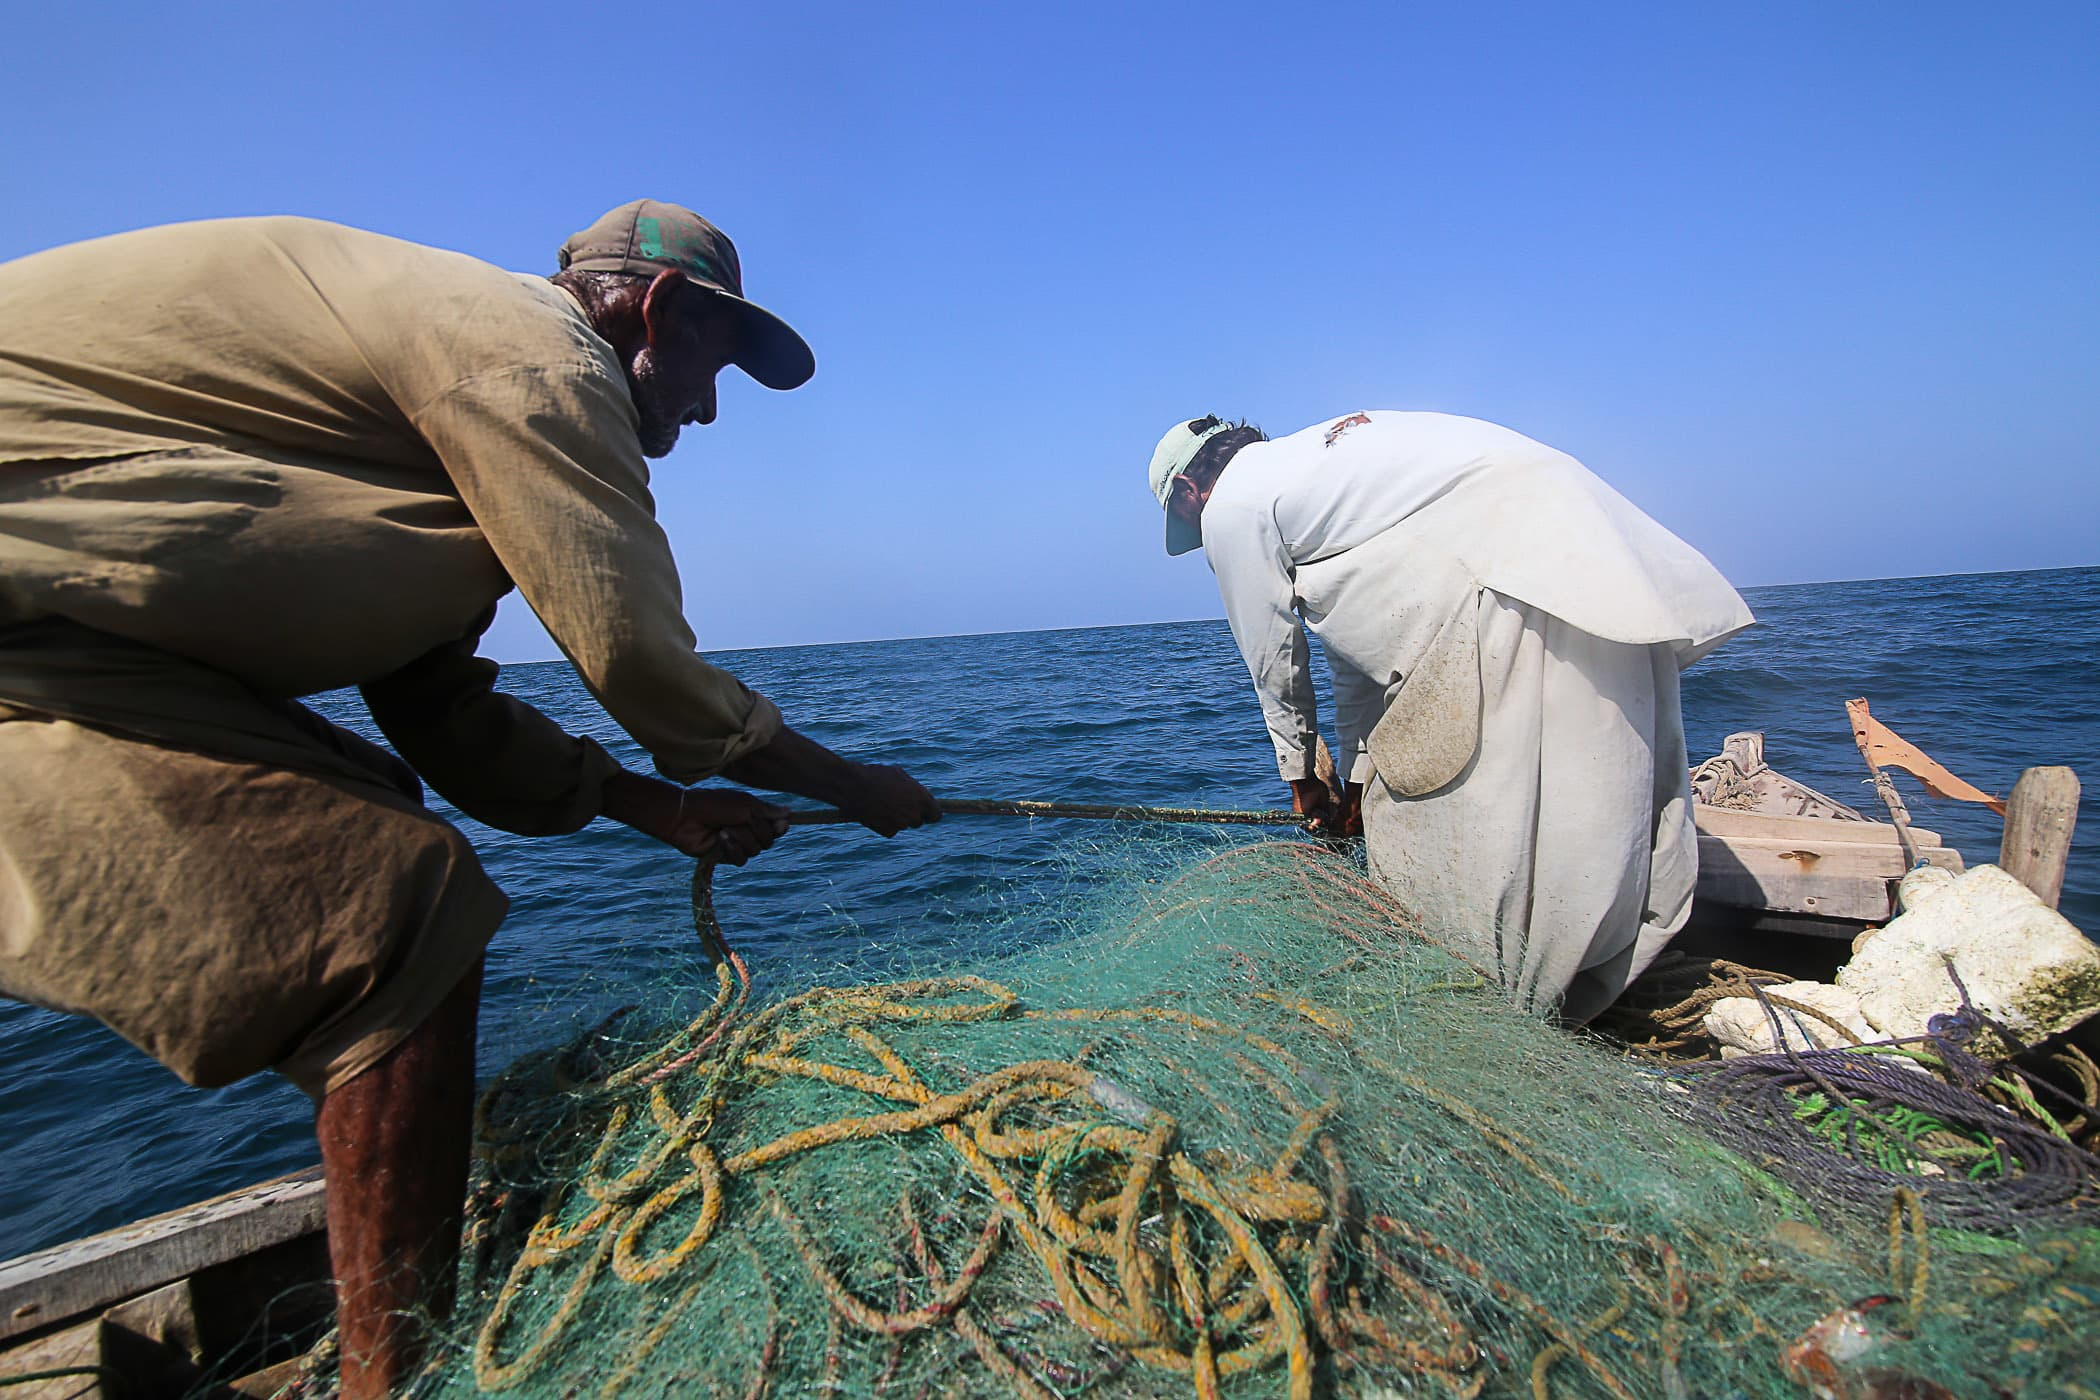 Sometimes the nets get tangled in the rocky seabed and a strong yank is required to dislodge it.